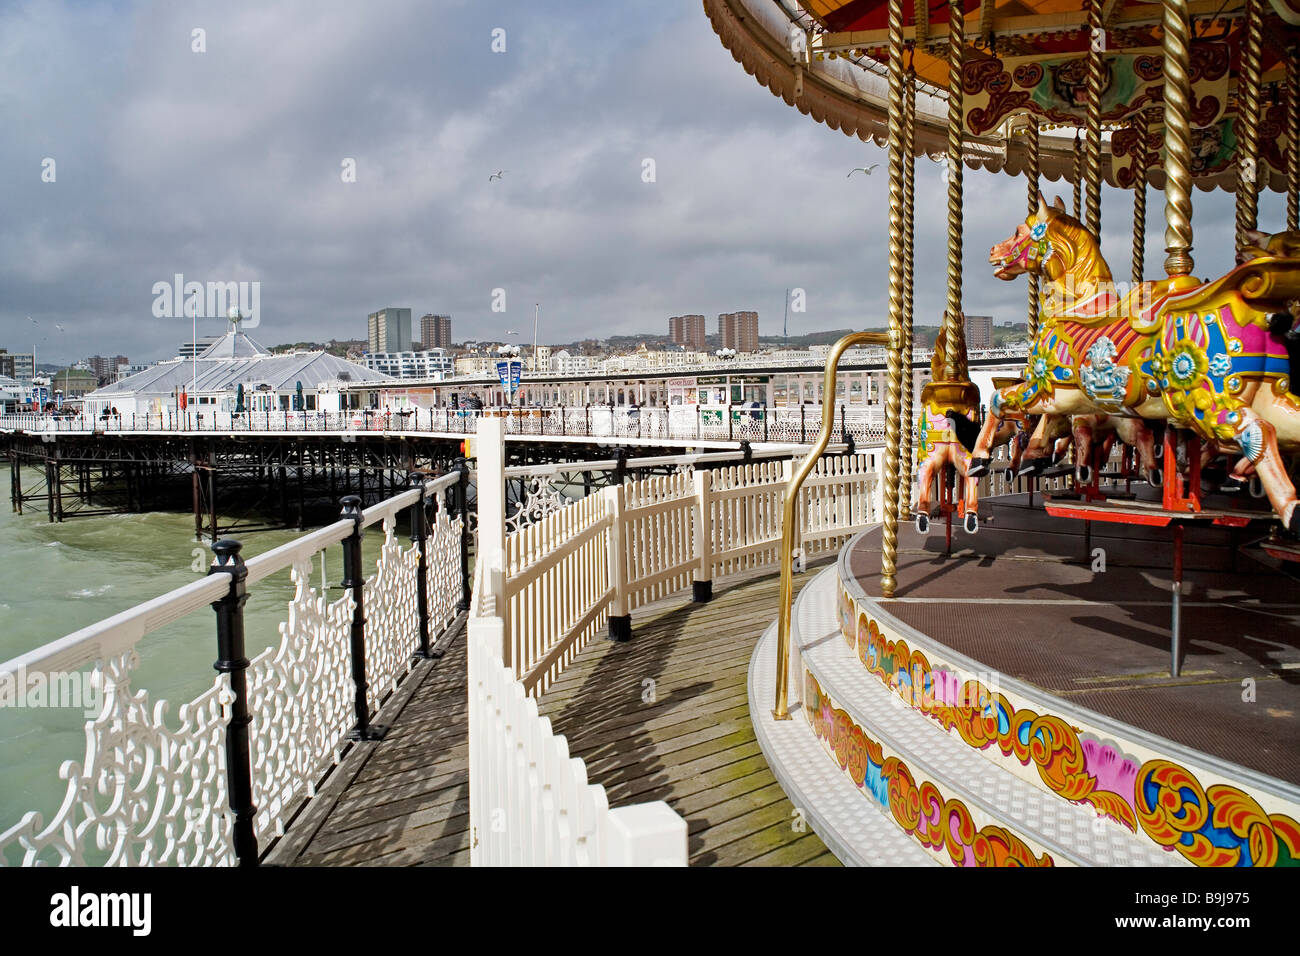 Carrousel, merry-go-round on the pier in Brighton, Sussex, Great Britain, Europe Stock Photo